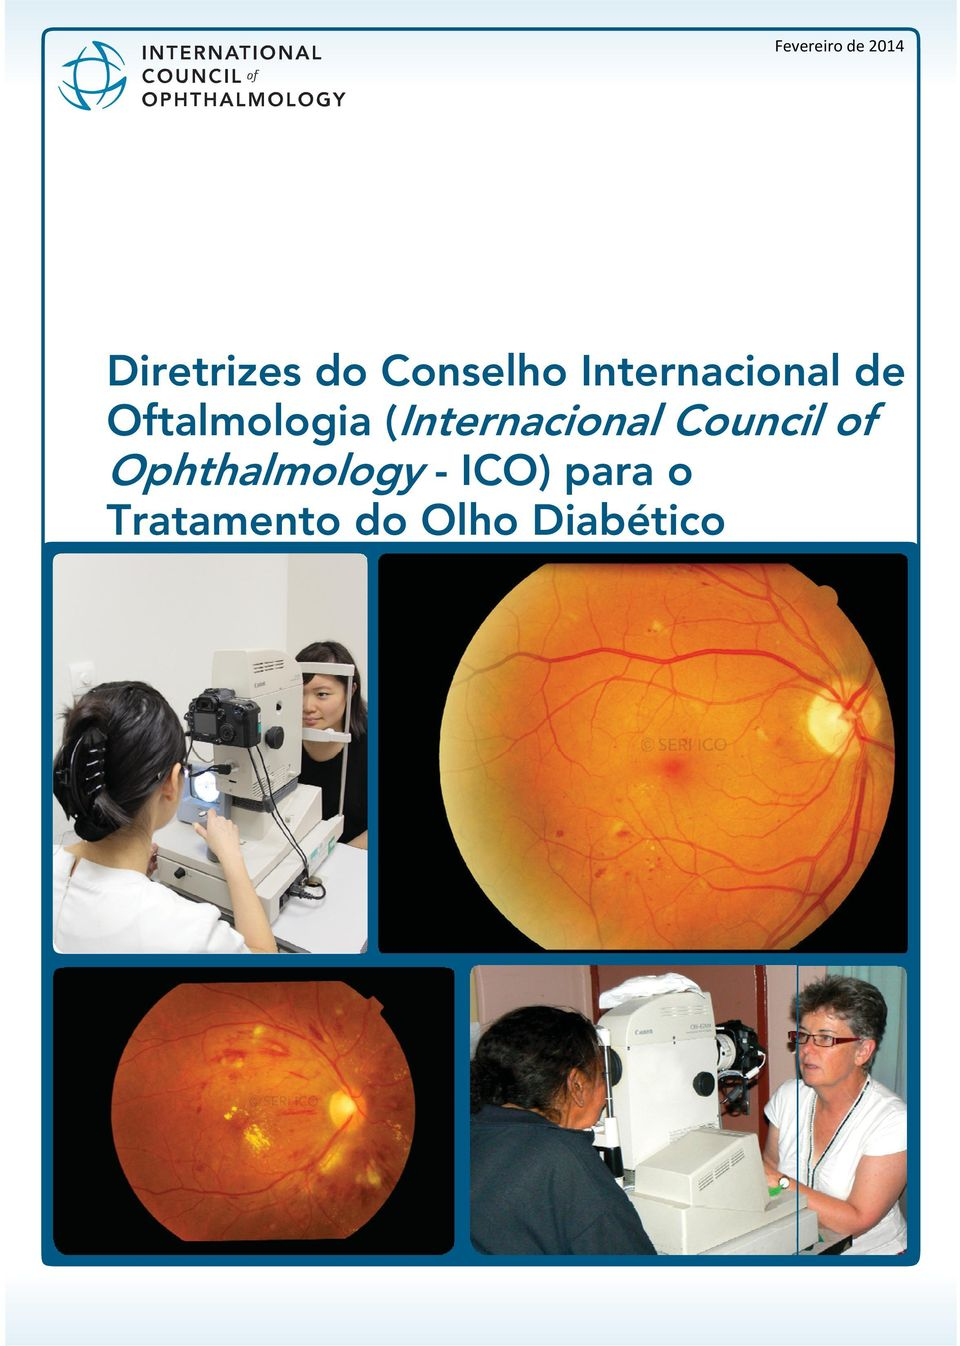 (Internacional Council of Ophthalmology -